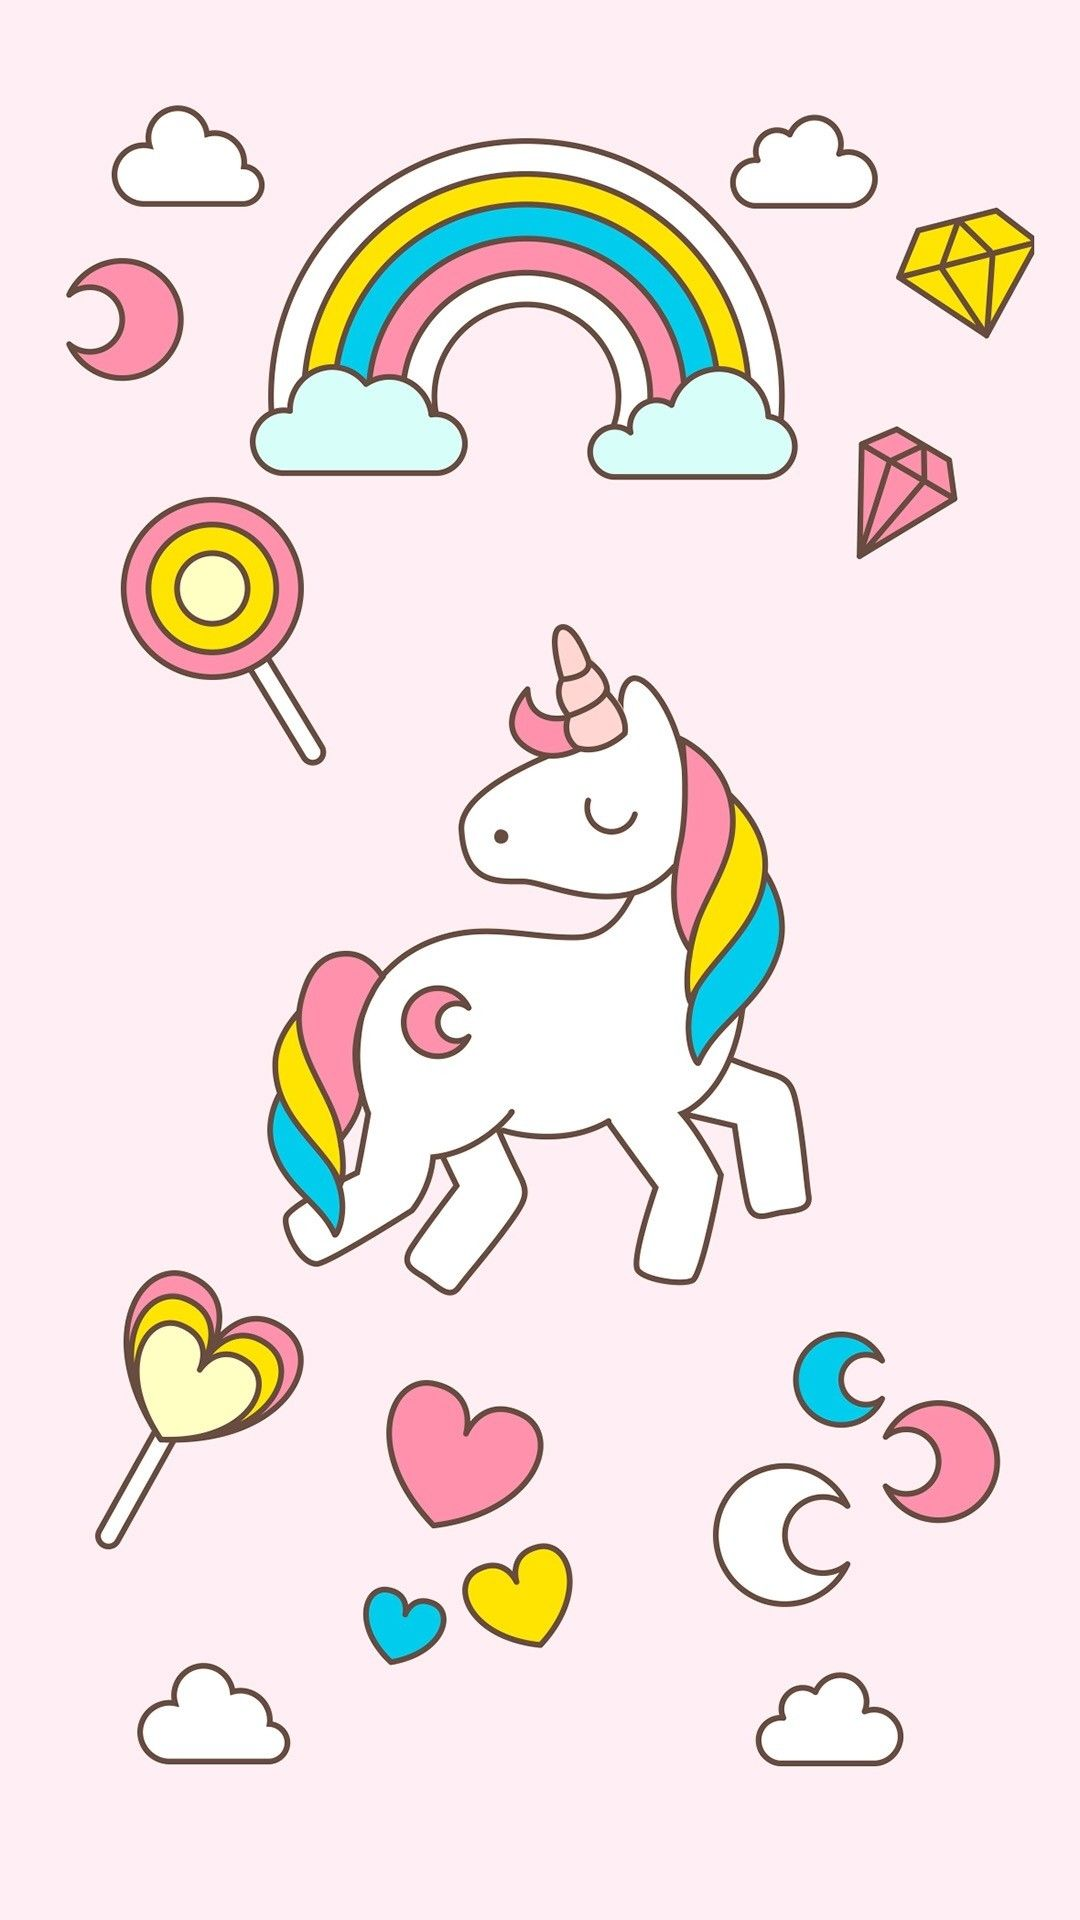 5 Top Kawaii Images For Your Android Or Iphone Wallpapers Unicorn Wallpaper Cute Unicorn Unicorn Backgrounds